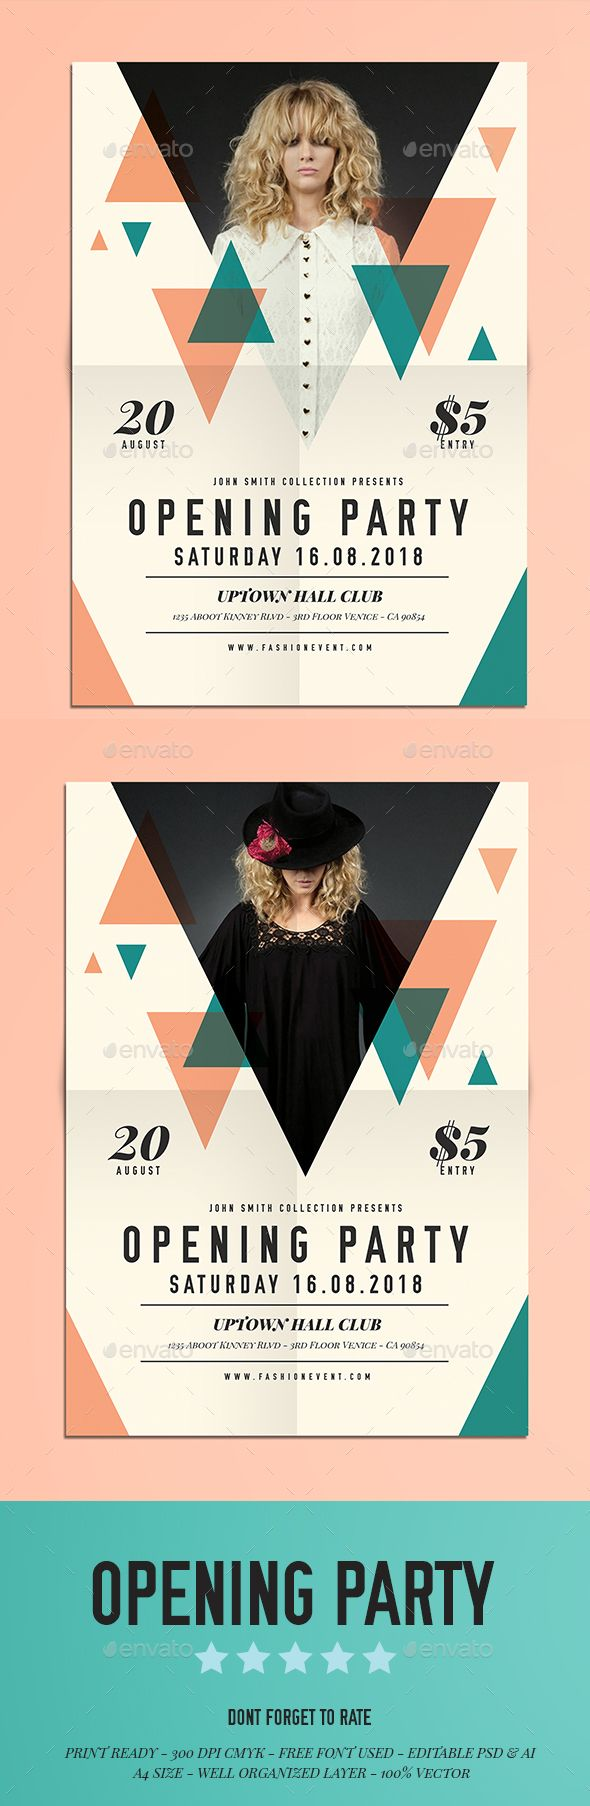 25 Best Ideas about Event Flyers on Pinterest  Event template Event flyer templates and